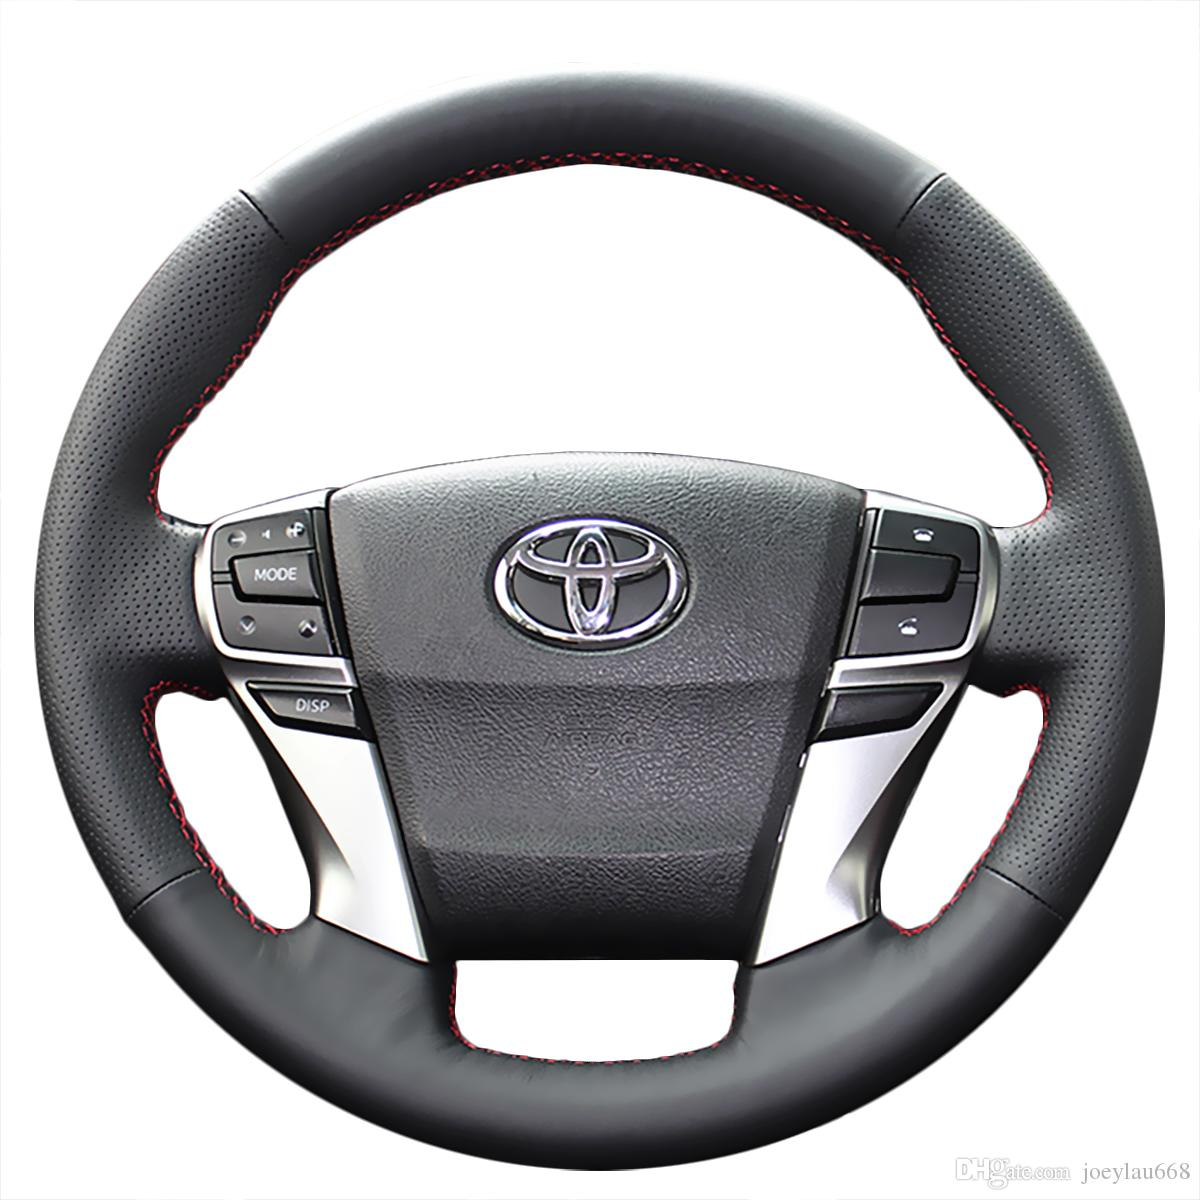 steering wheel cover case for toyota mark x reiz 2013 new modelsteering wheel cover case for toyota mark x reiz 2013 new model genuine leather diy hand stitch car styling superskin steering wheel cover tactical steering